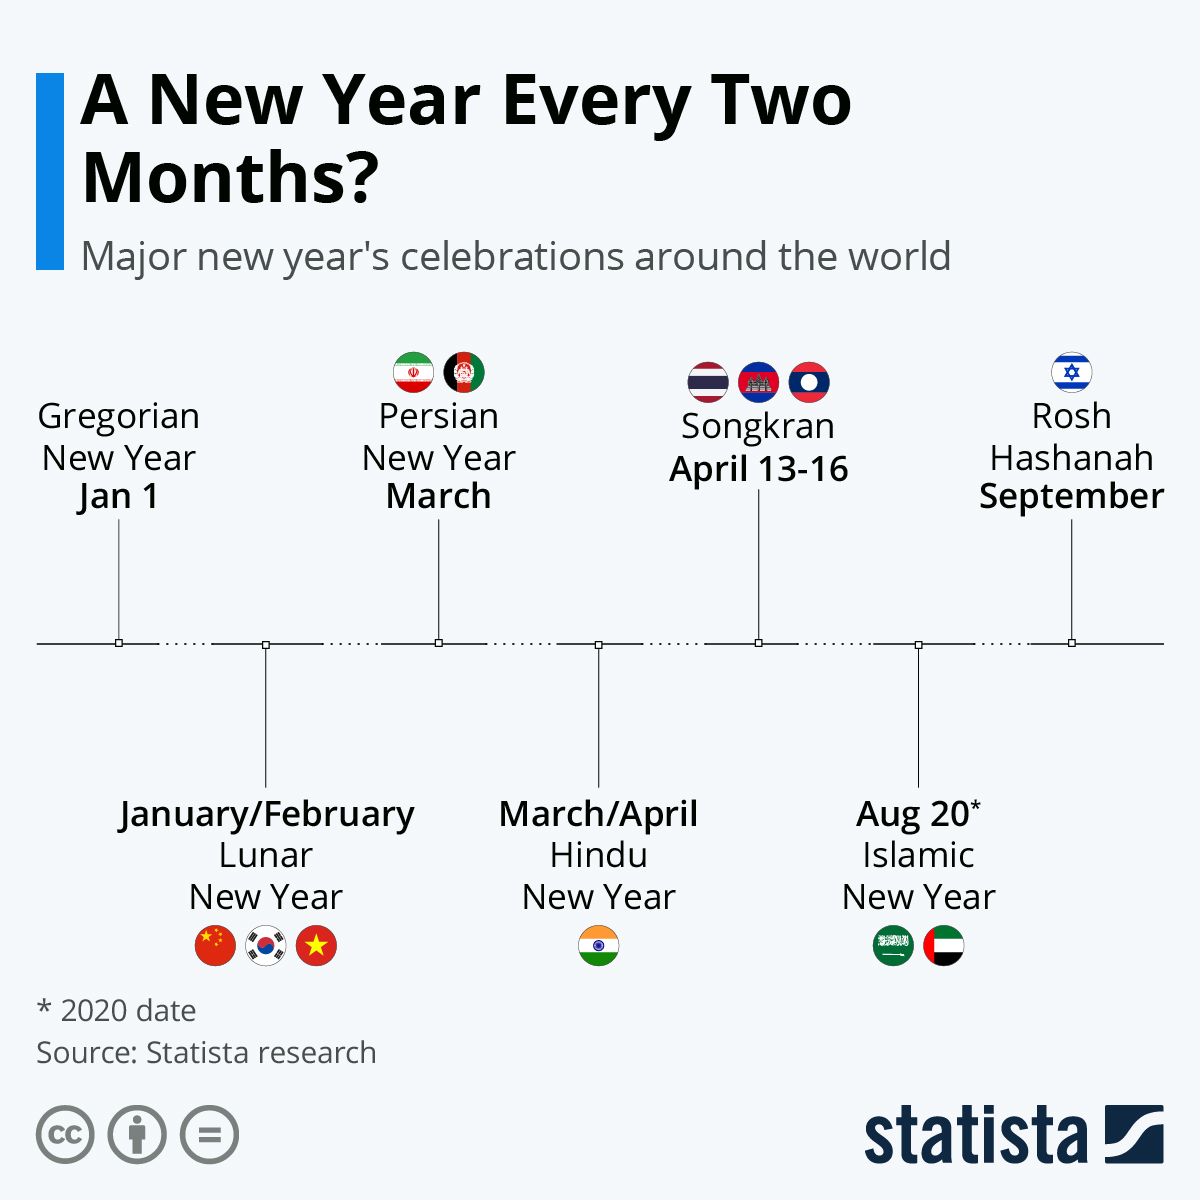 A New Year Every Two Months? Year-End Celebrations Around The World